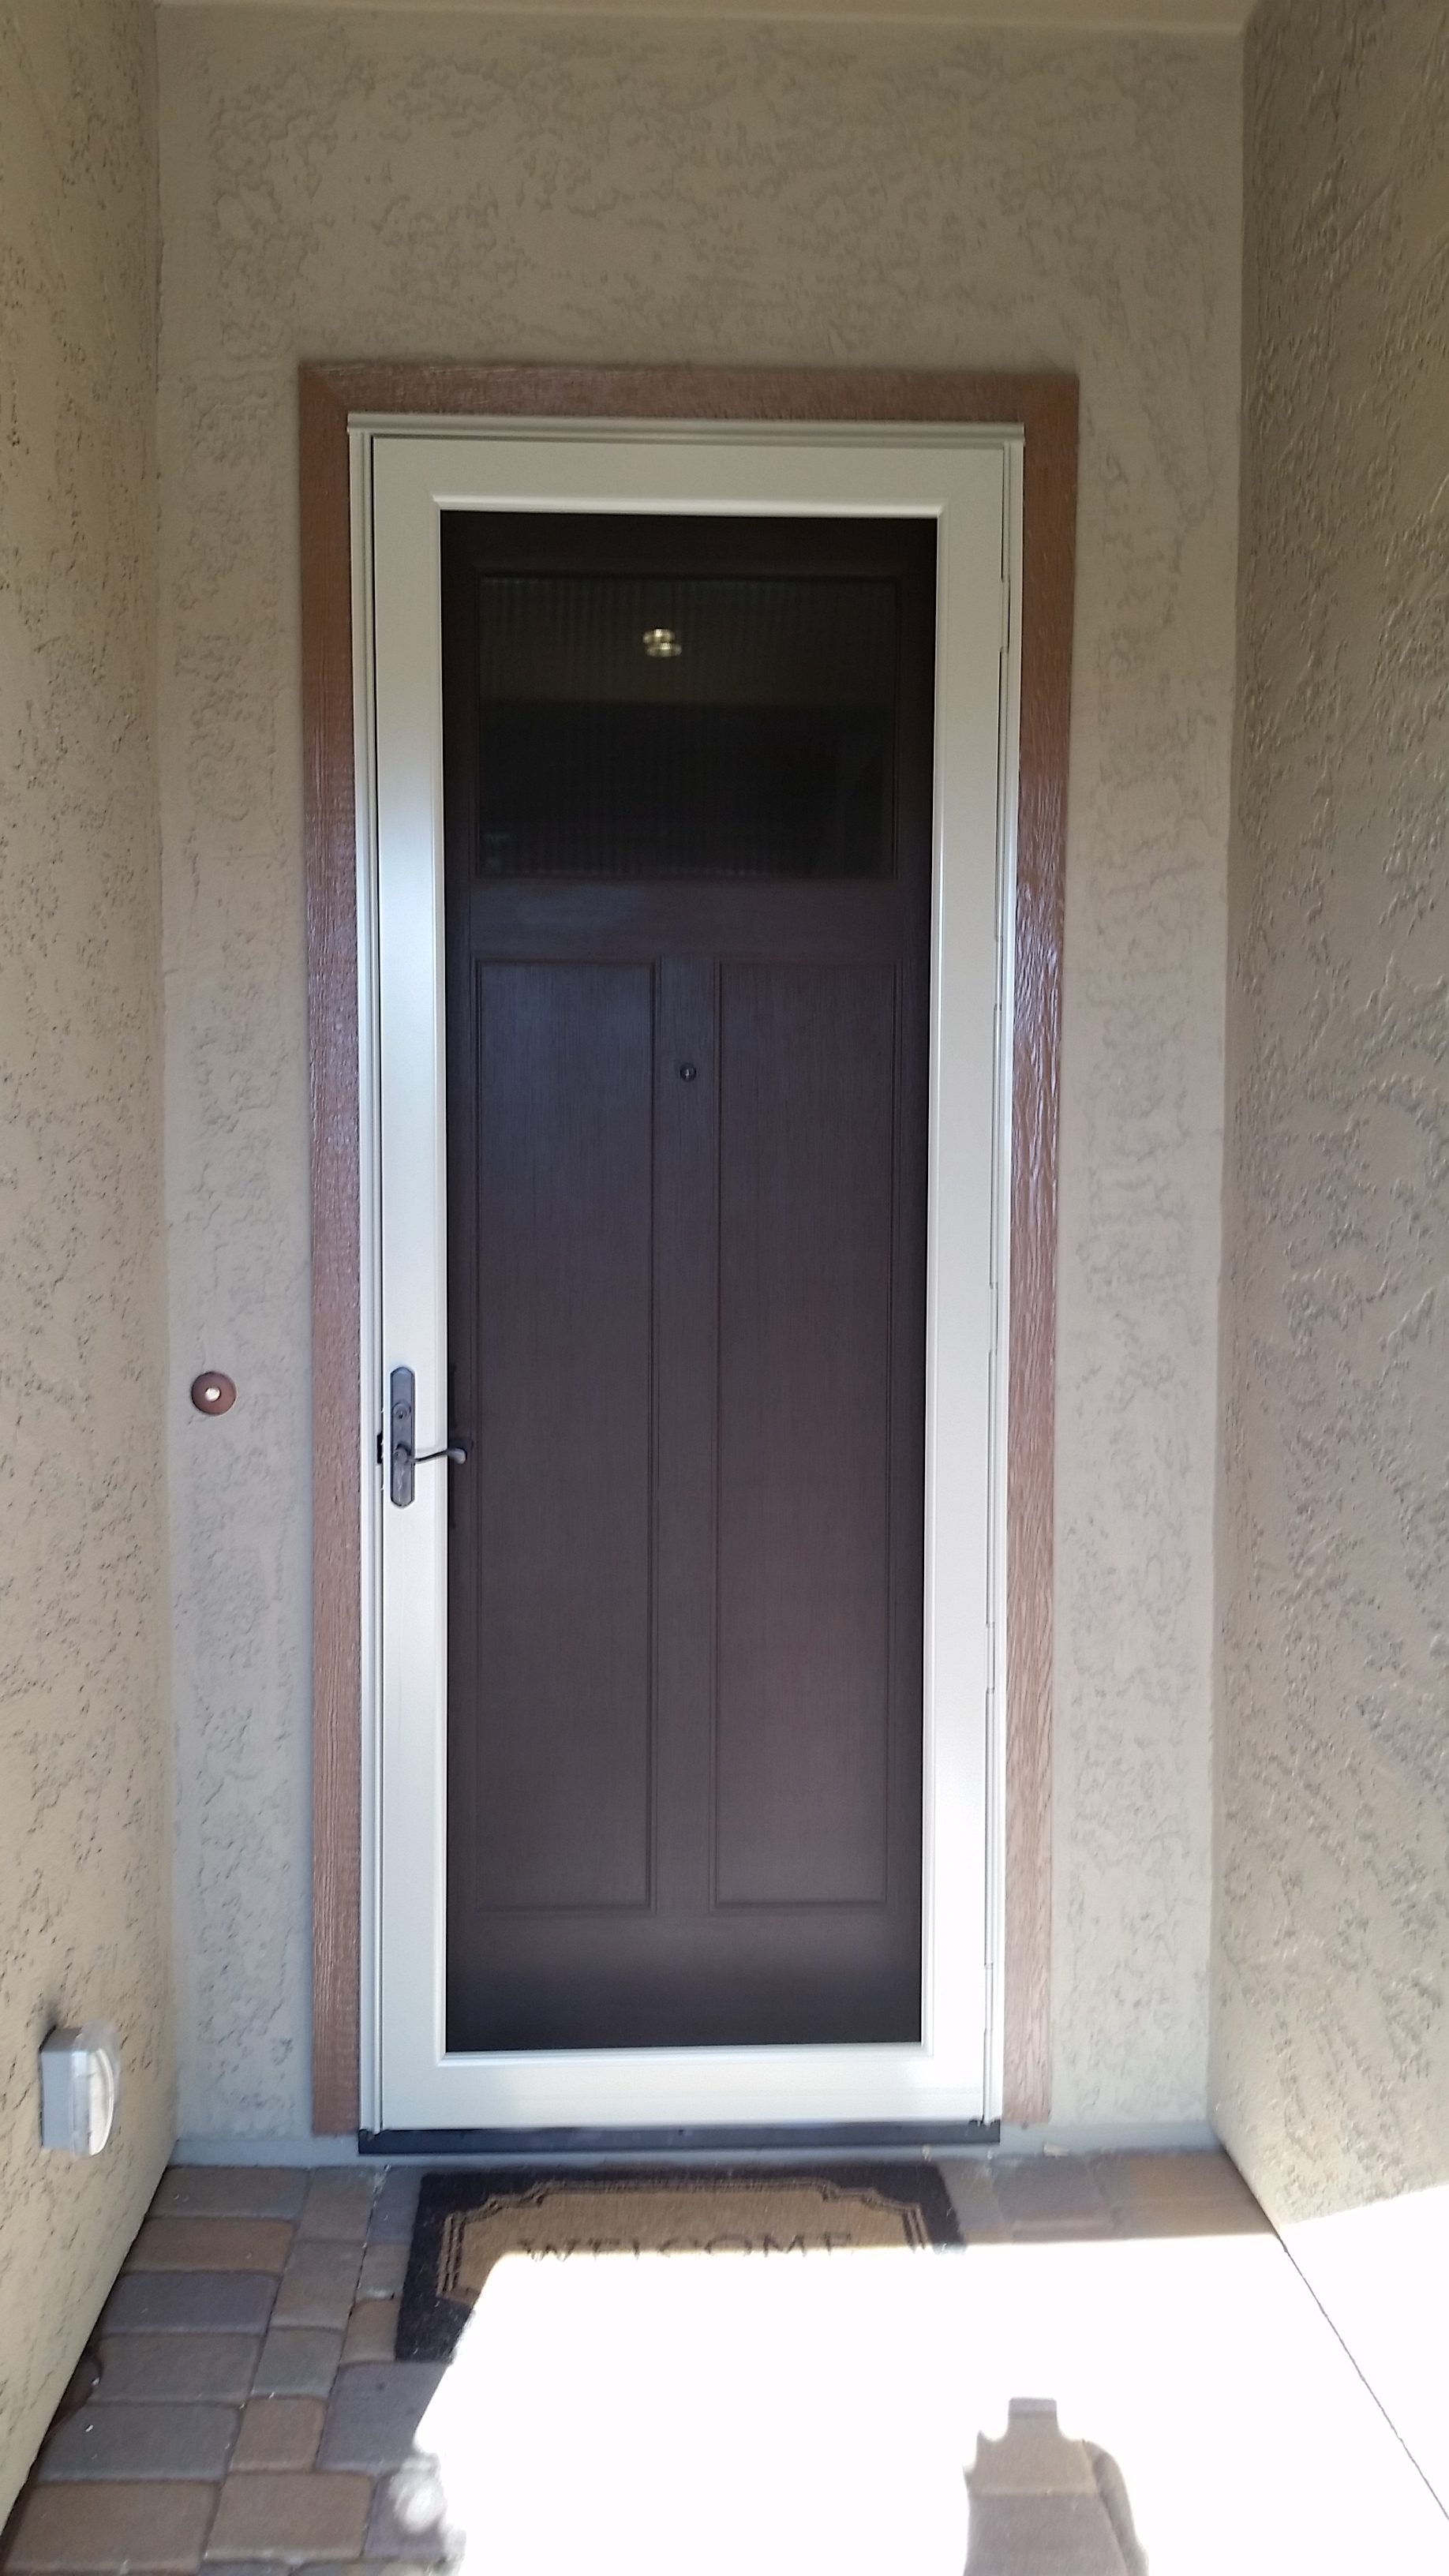 Eco Guard doors come complete with our u201cBest Price and Home Protection Guarantees!u201d & Stainless Steel Mesh Screens in Phoenix AZ